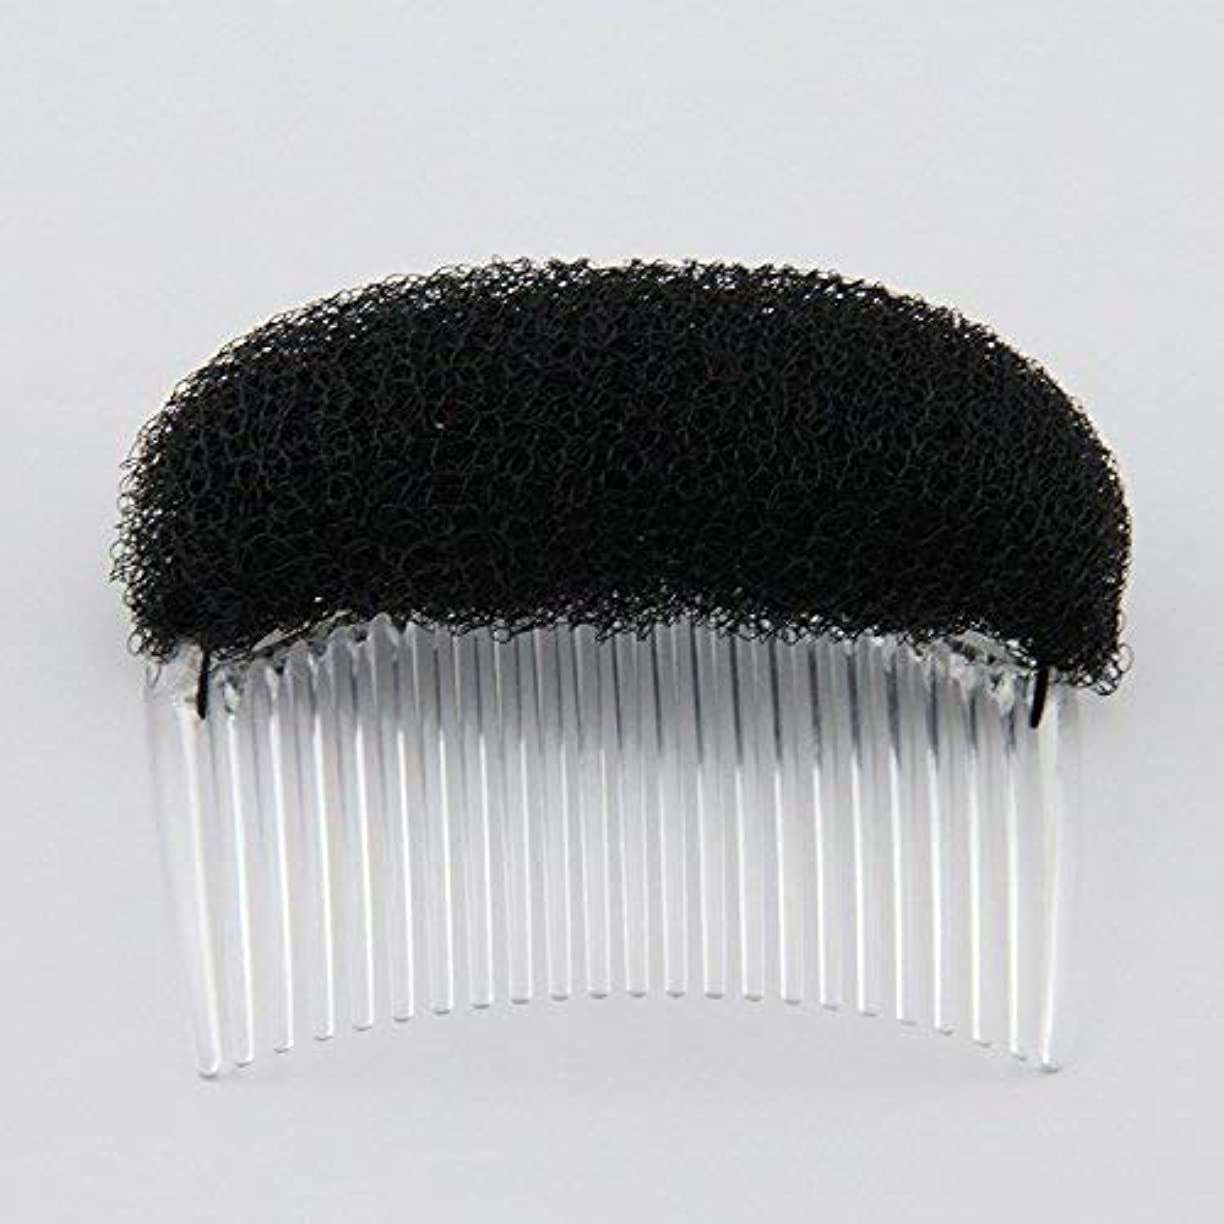 フォロー家畜周波数1PC Charming BUMP IT UP Volume Inserts Do Beehive hair styler Insert Tool Hair Comb Black/Brown colors for choose...